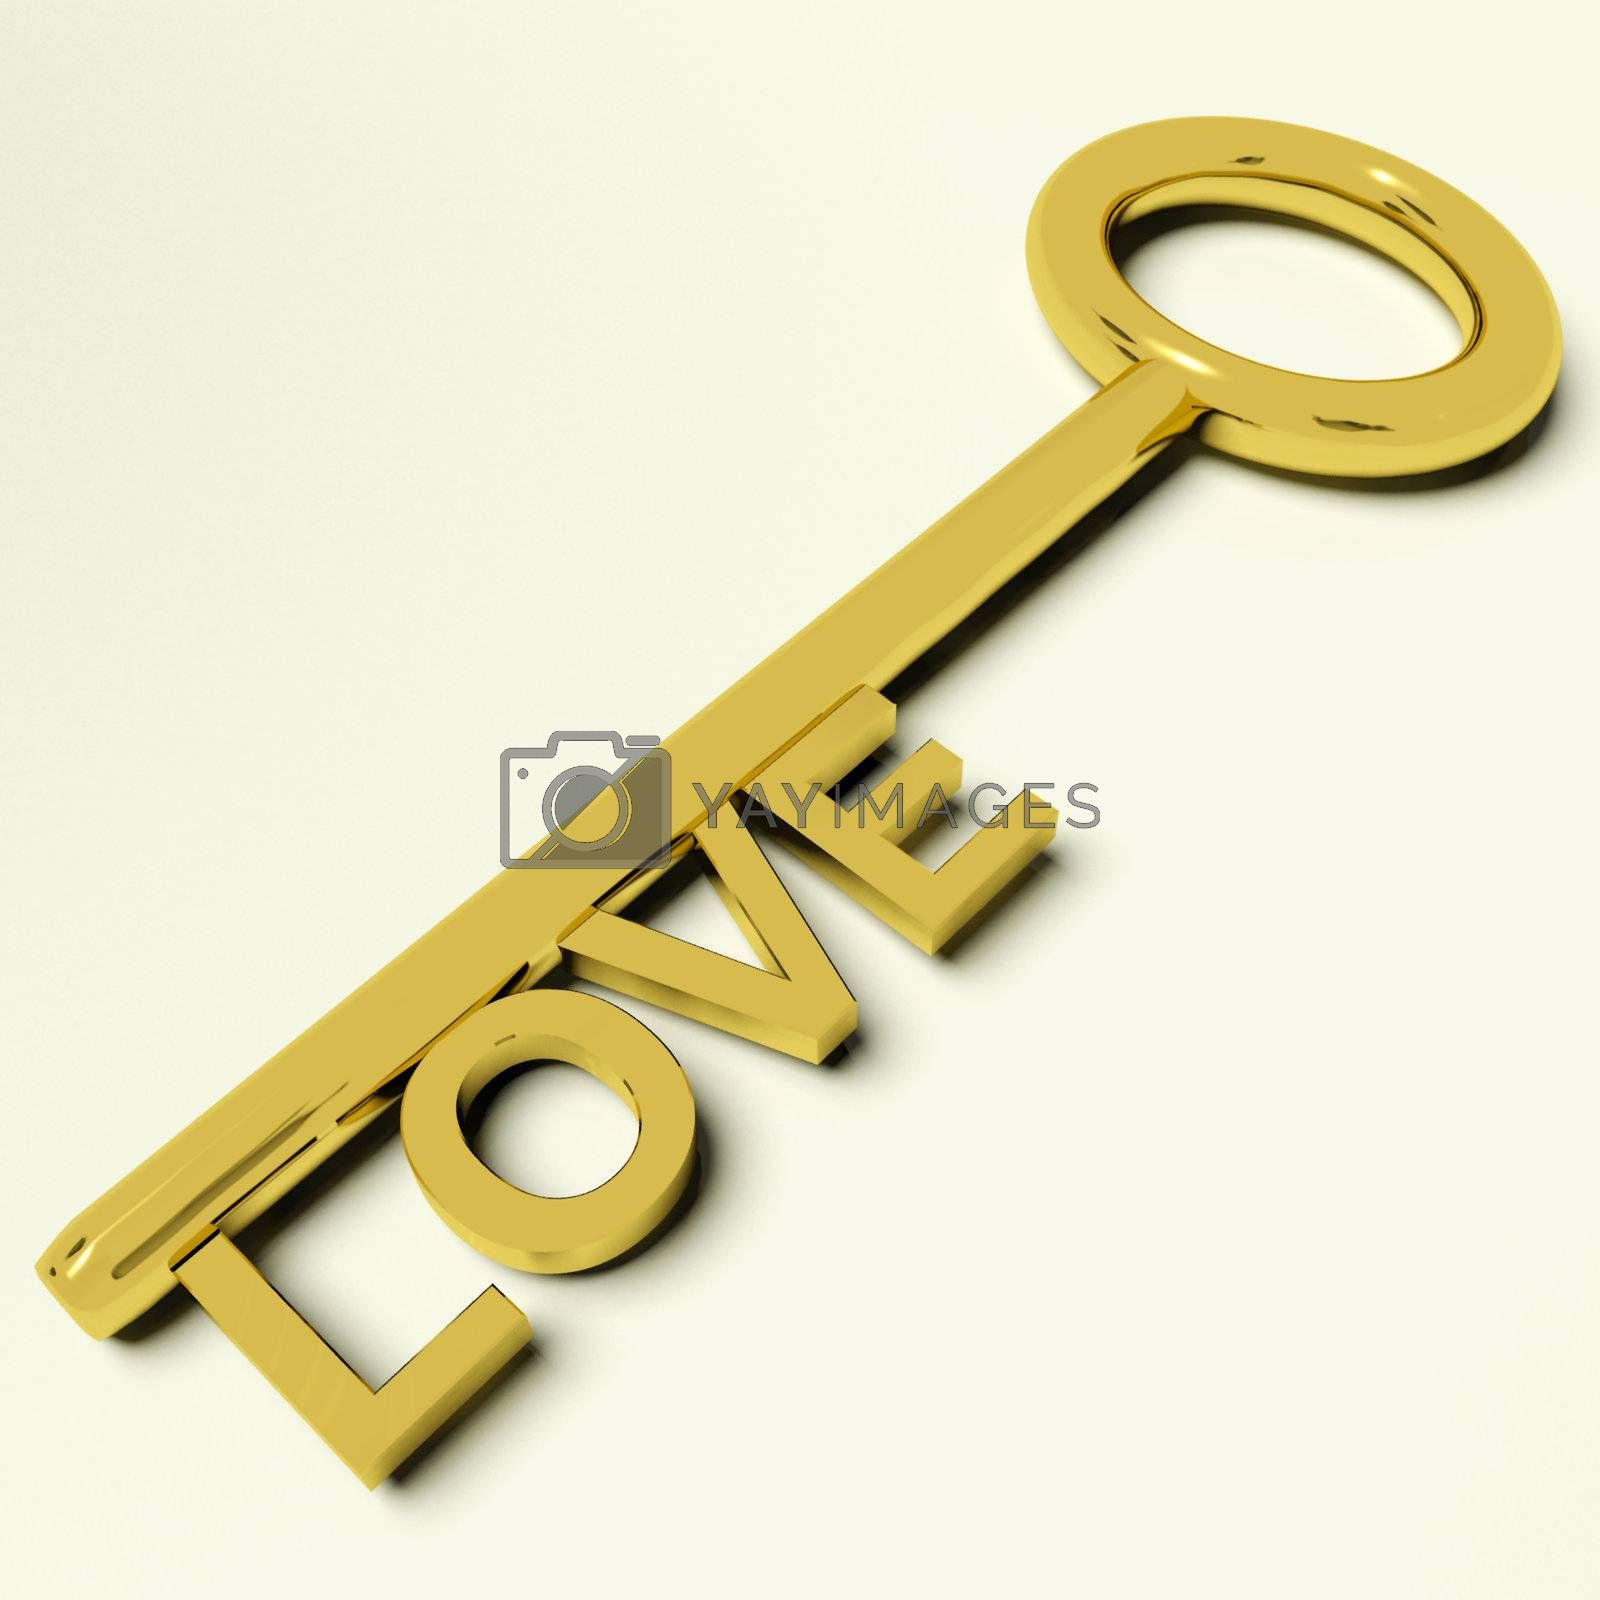 Love Gold Key Representing Adoration And Feelings